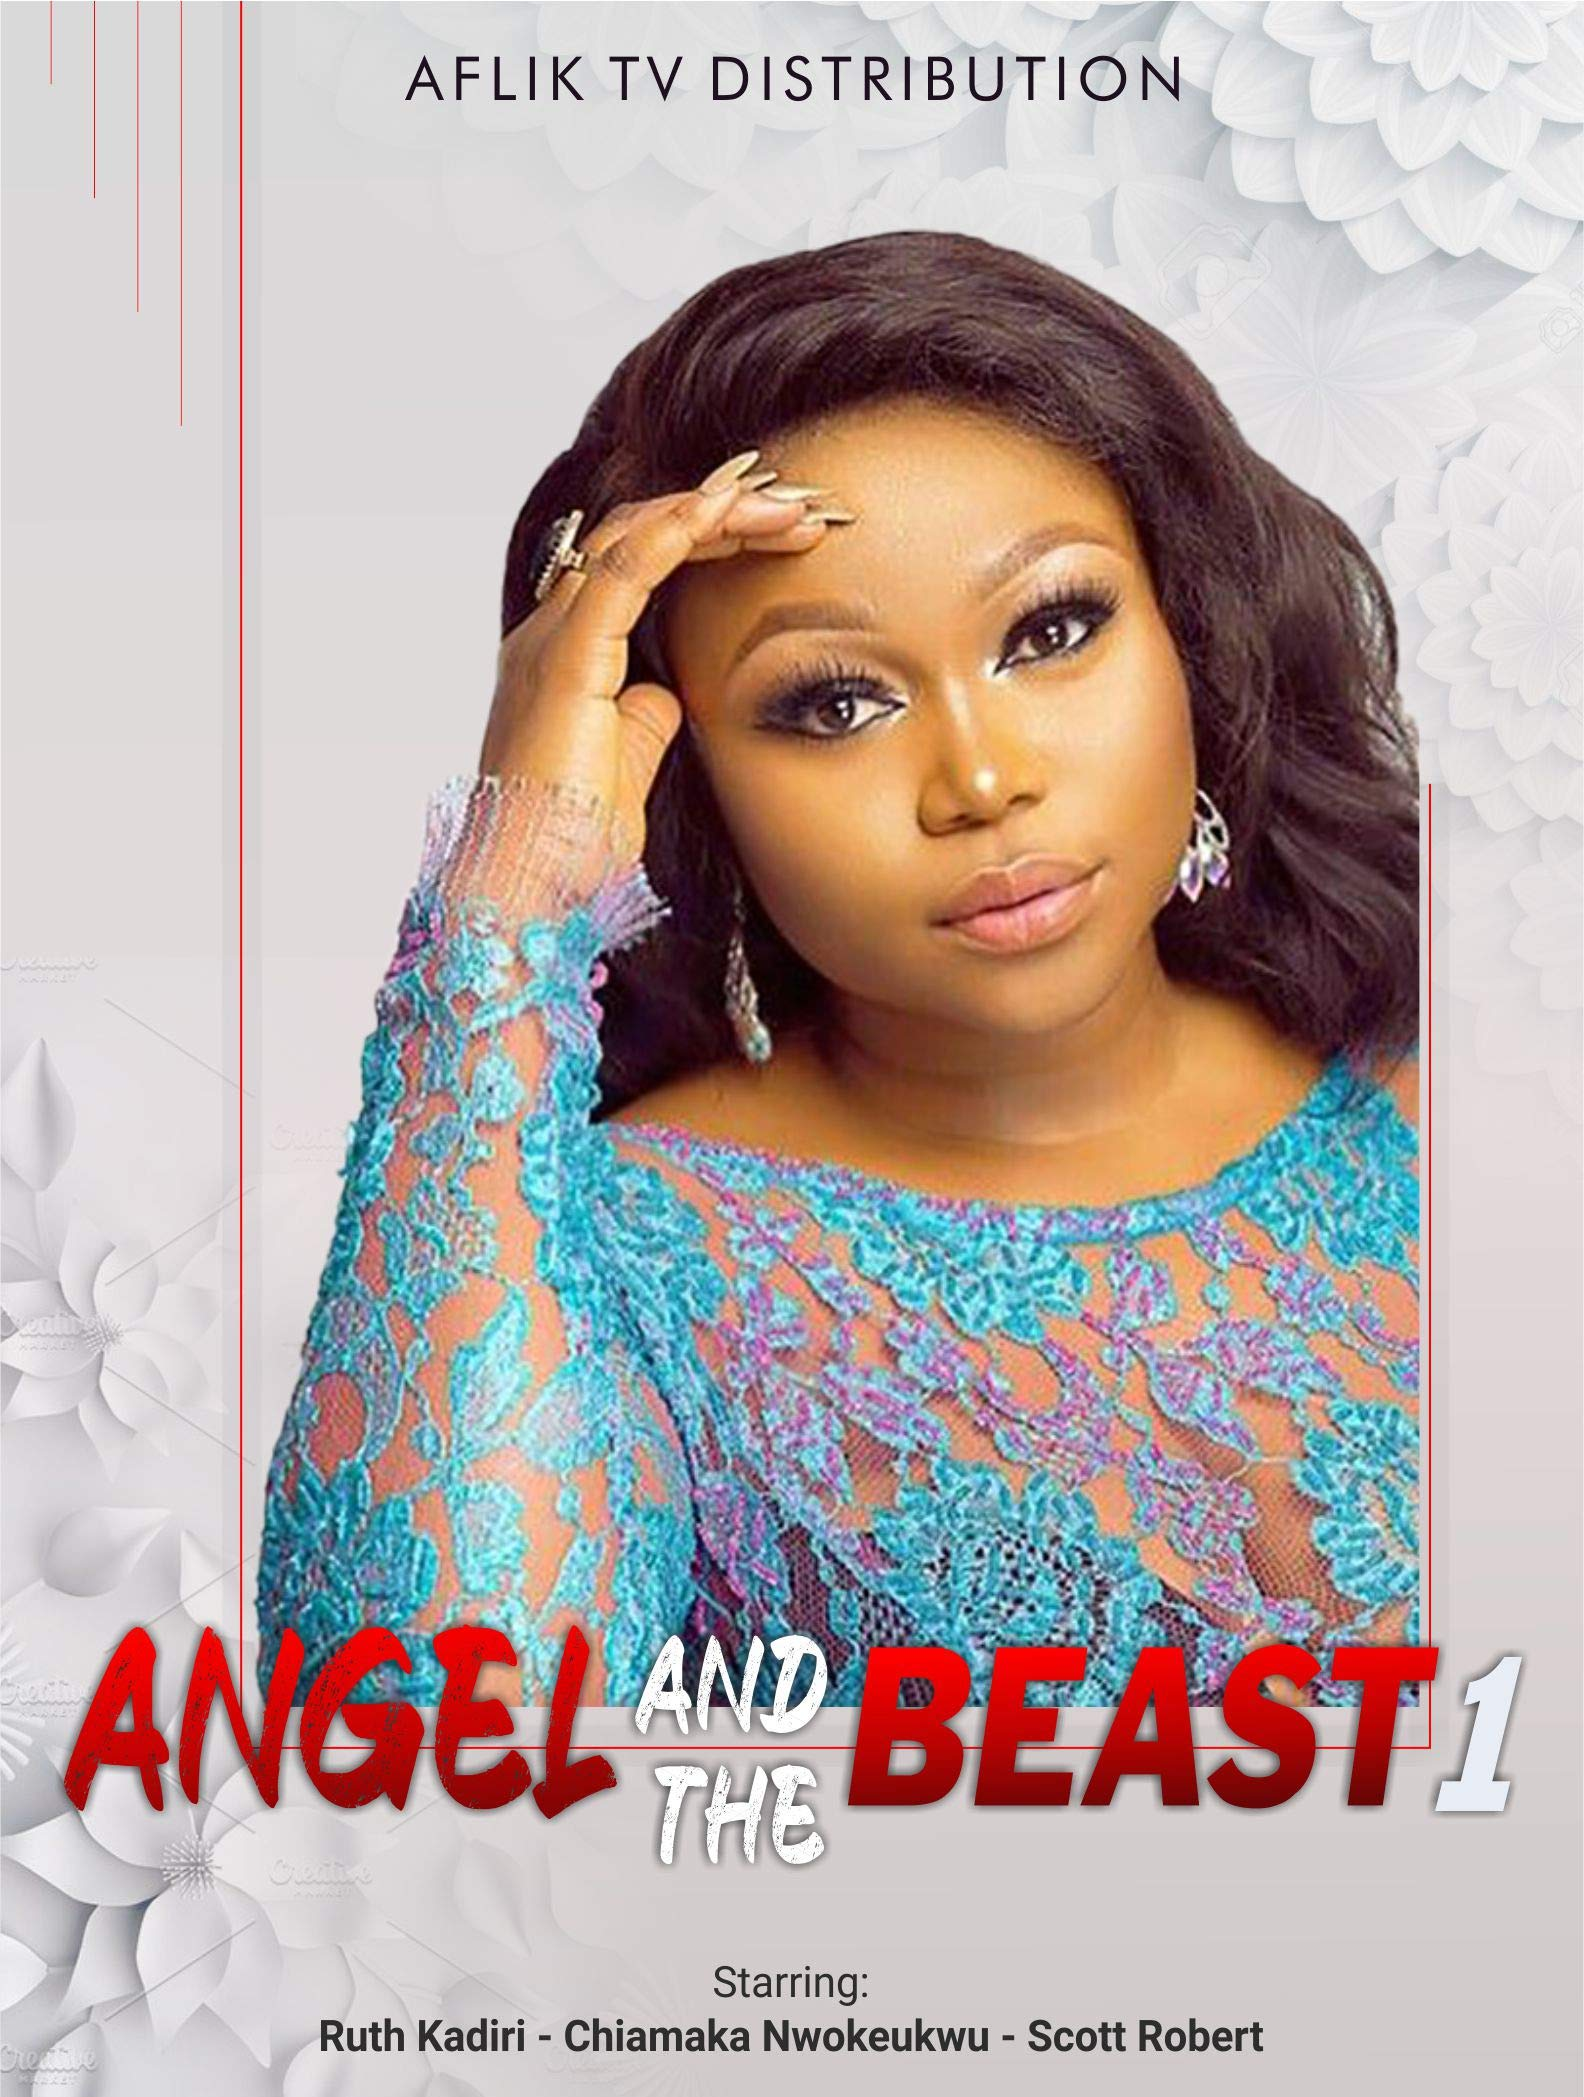 Angel and the beast 1